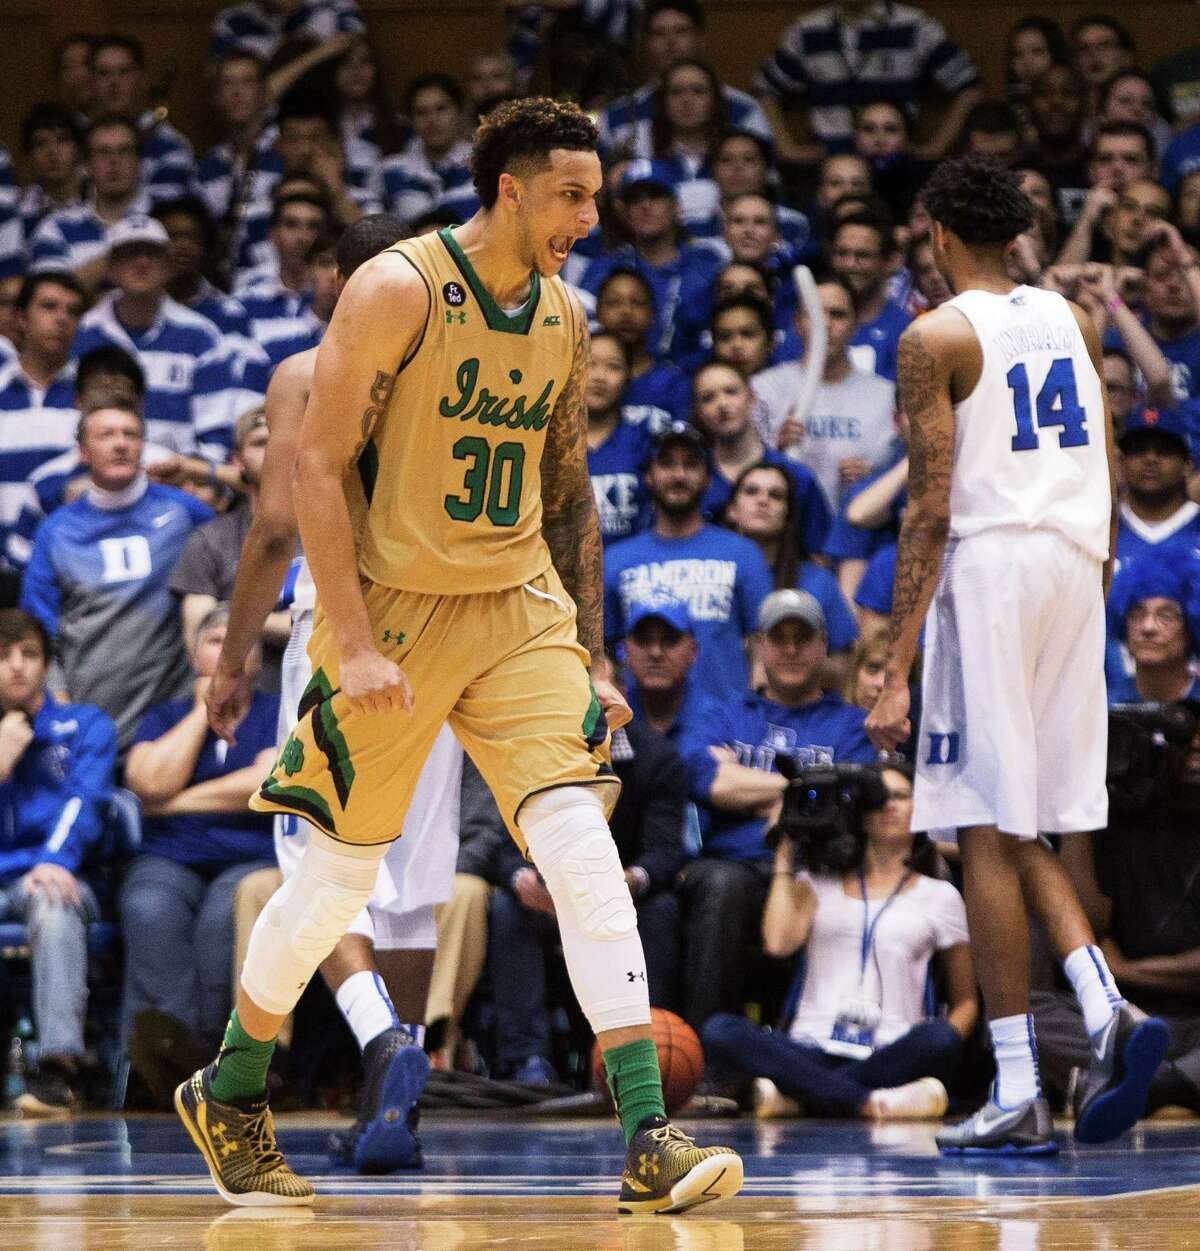 Four big upsets Notre Dame 95, No. 9 Duke 91 The Fighting Irish once again had the Blue Devils' number (four wins in their last five meetings), and this time Notre Dame big man Bonzie Colson came up huge with 31 points and 11 rebounds on Saturday in front of the Cameron Crazies.